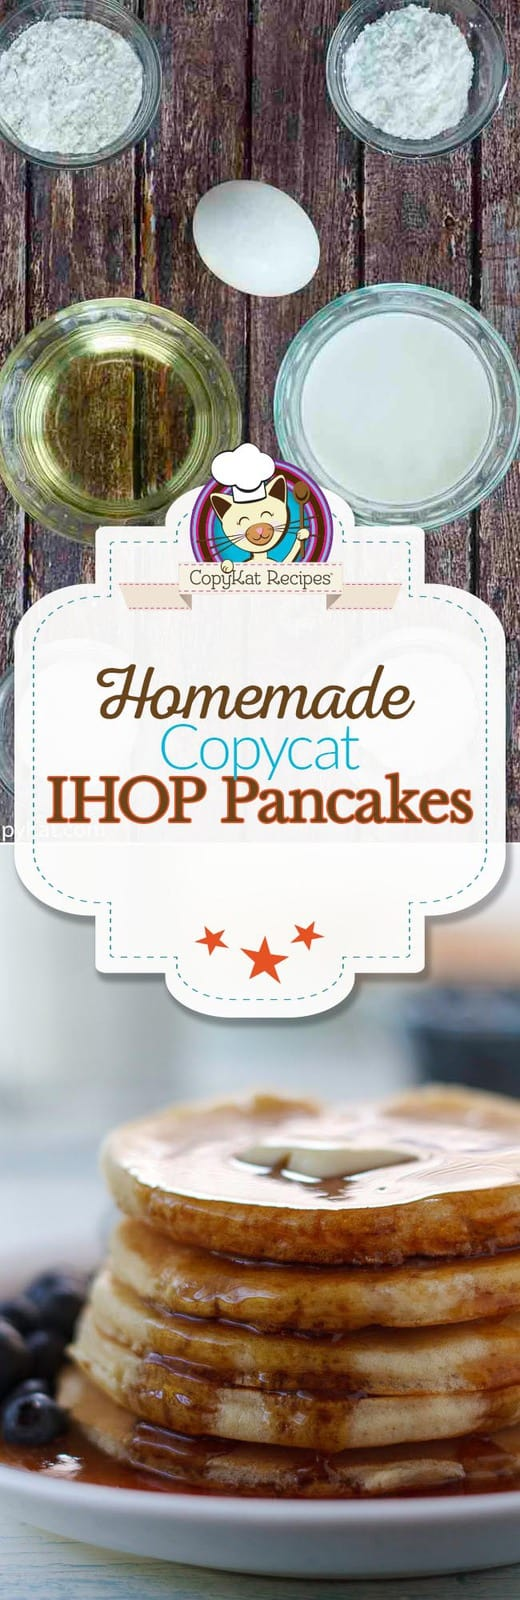 Make your own homemade copycat IHOP Buttermilk Pancakes from scratch!